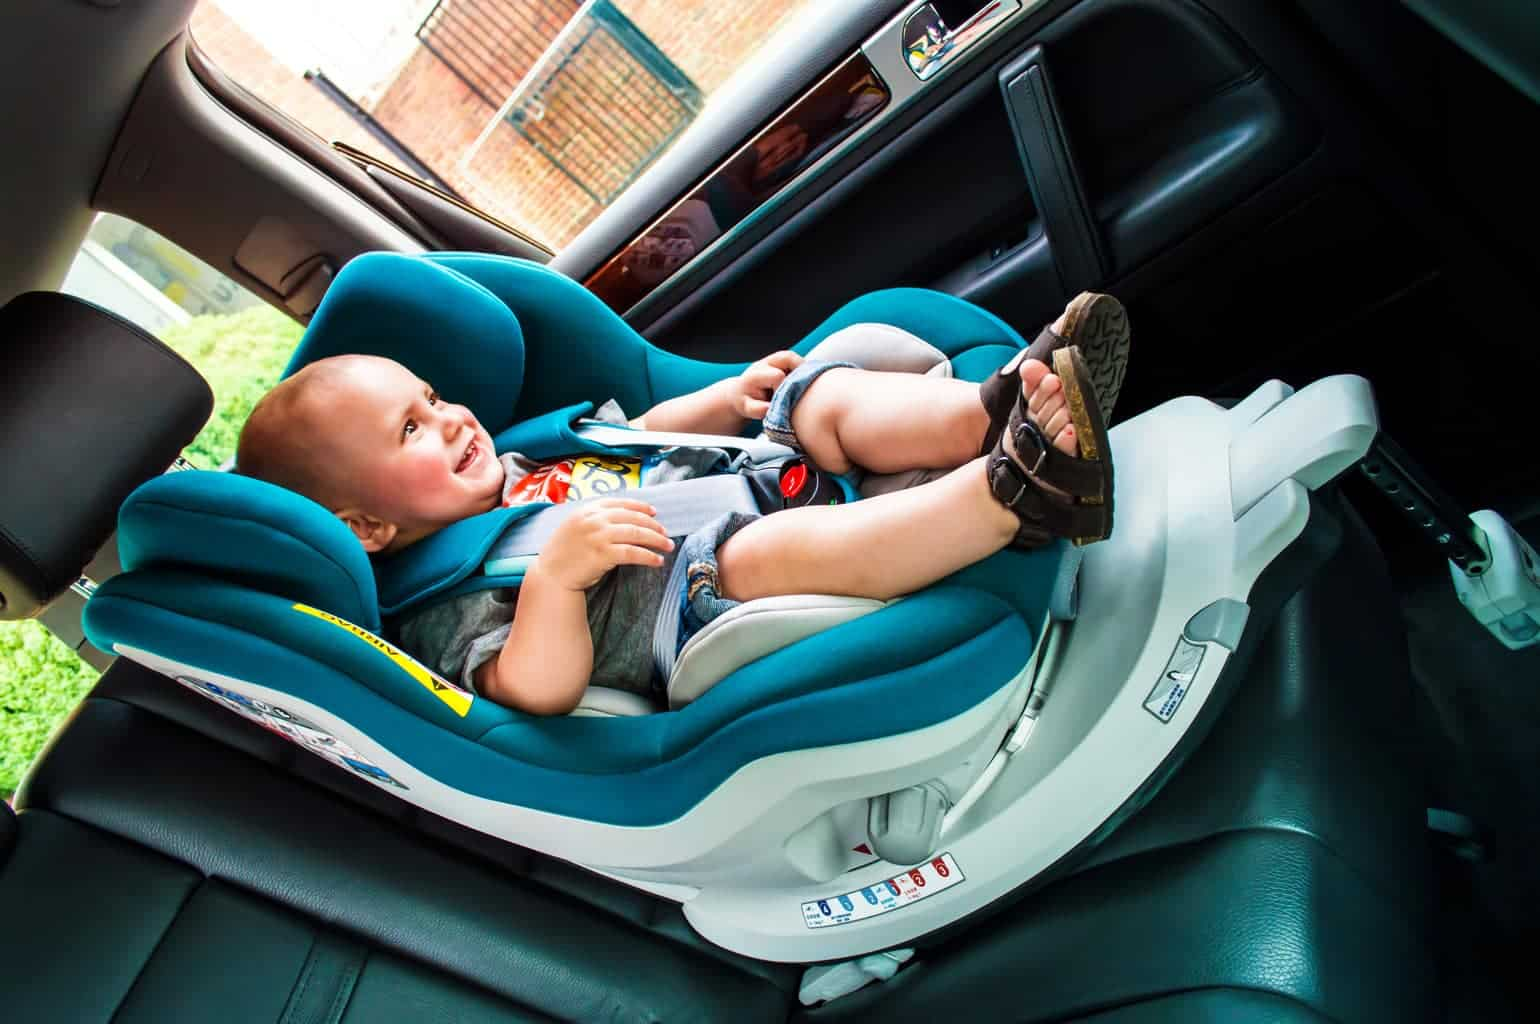 Cozy 'n' Safe MERLIN car seat